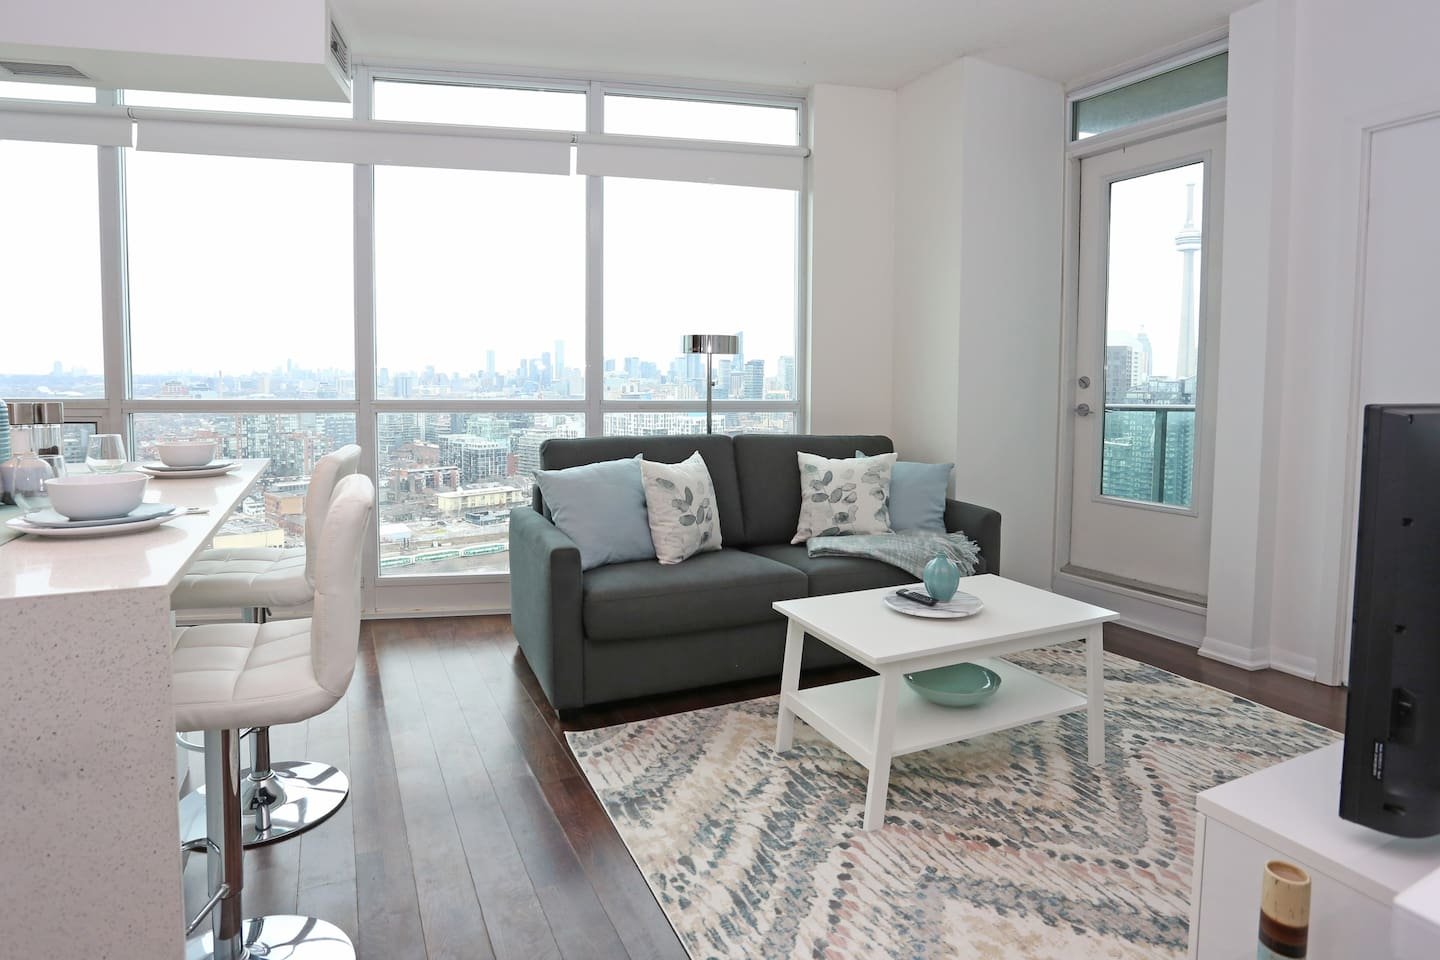 High rise condo with 180 degree view of Toronto.